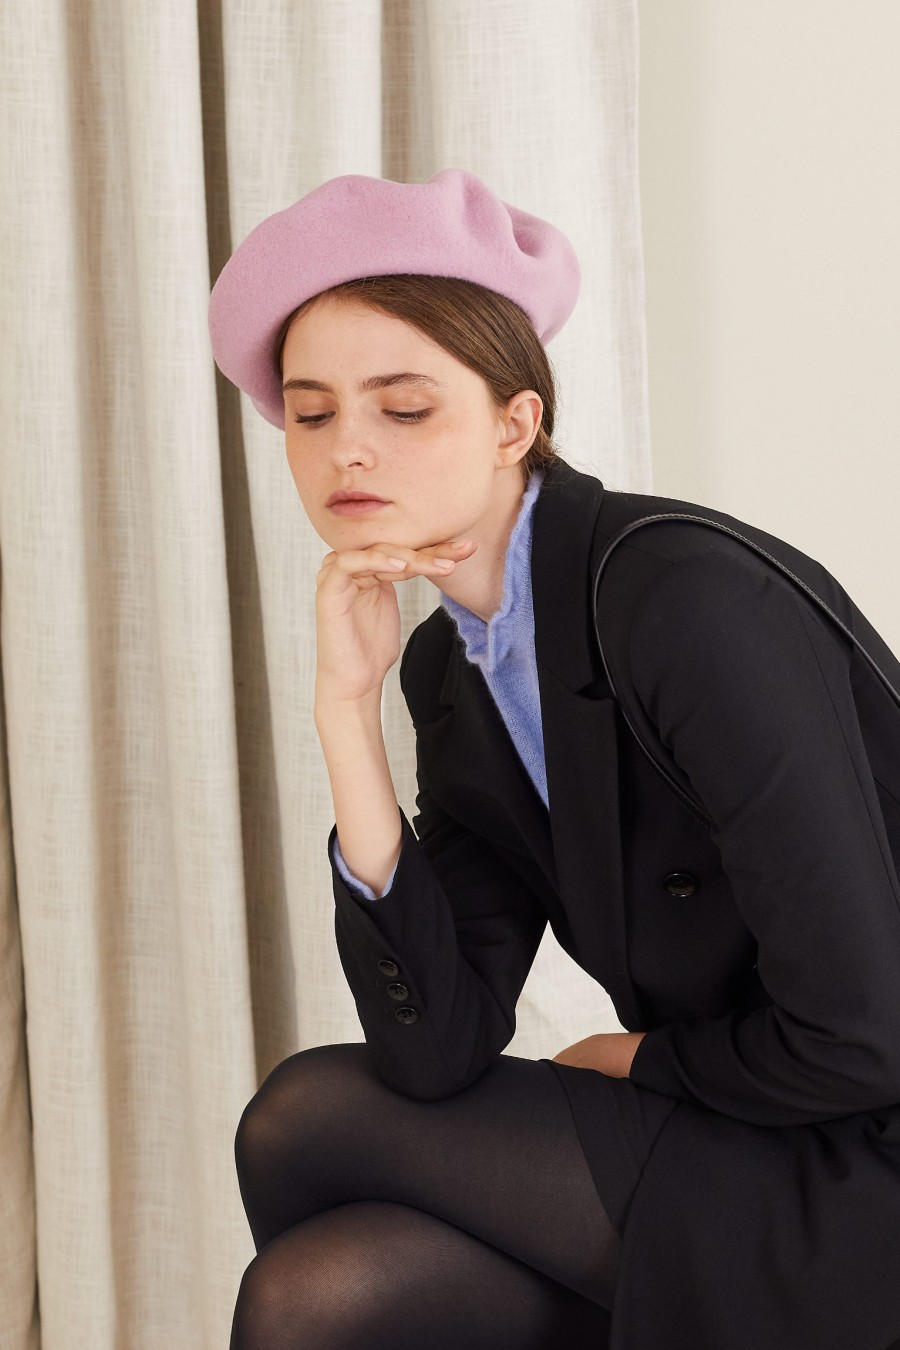 paris style beret made in italy